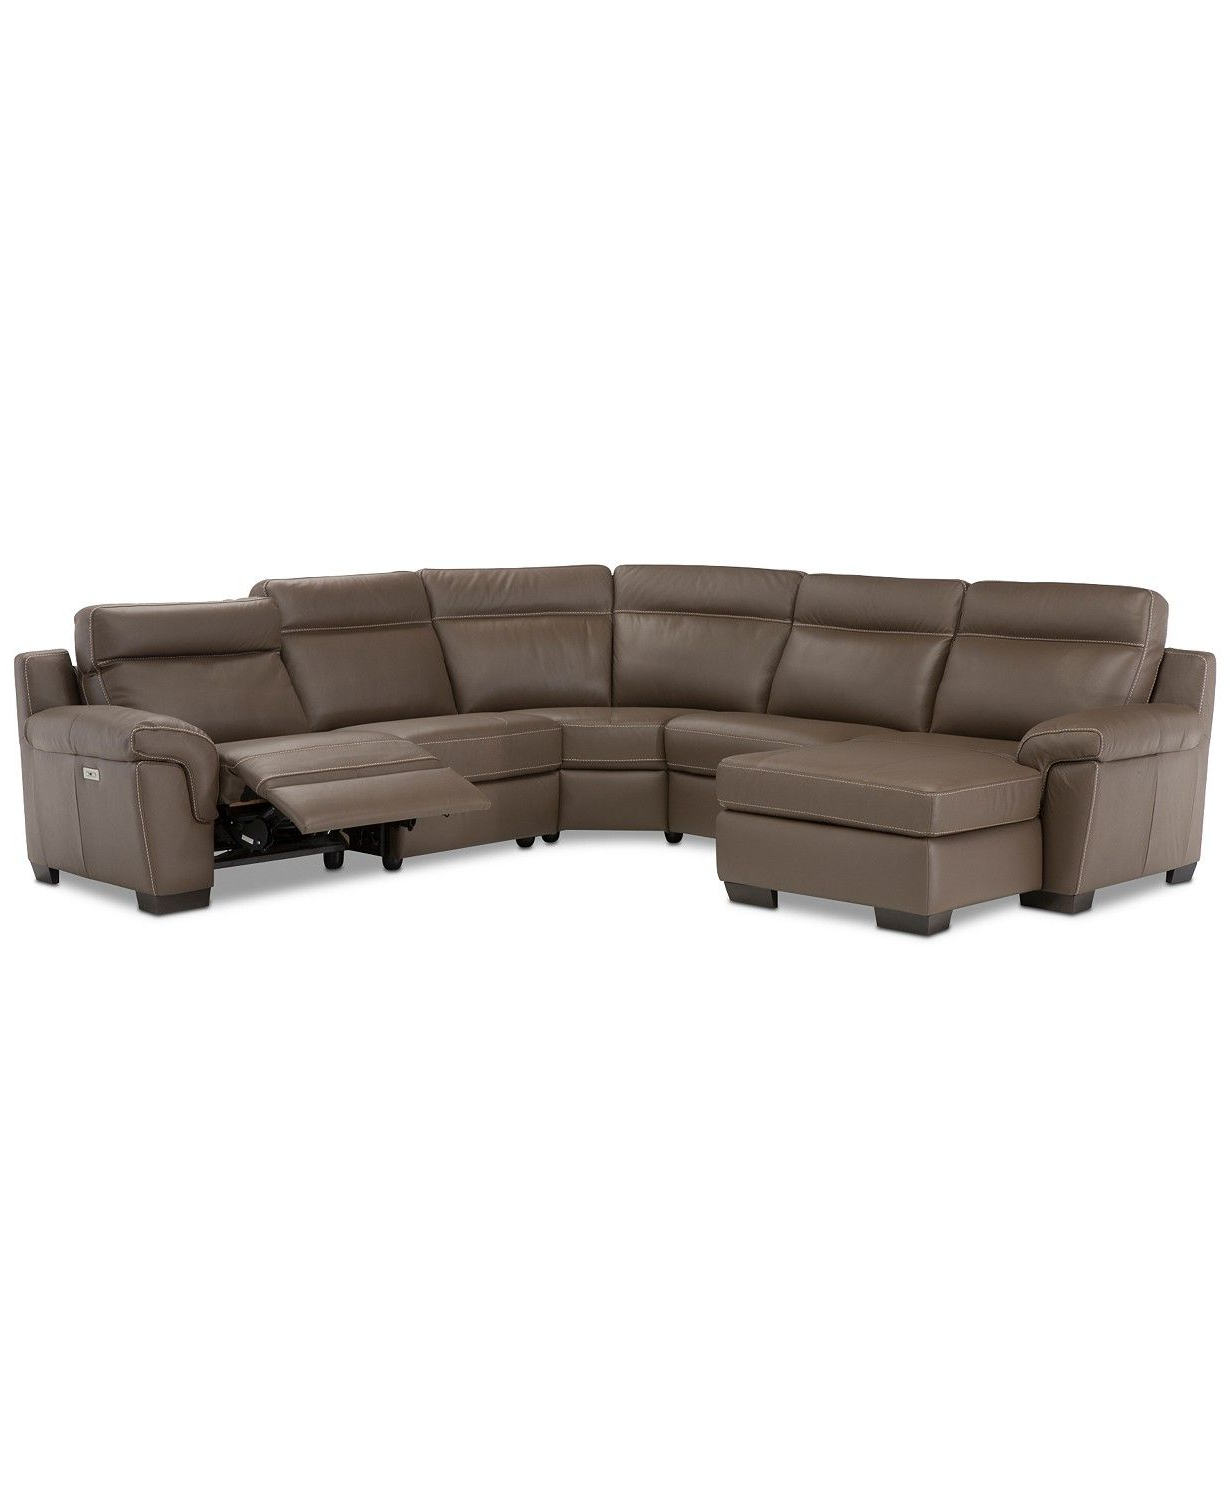 Preferred Clyde Saddle 3 Piece Power Reclining Sectionals With Power Headrest & Usb Within Julius Ii 5 Pc (View 2 of 20)